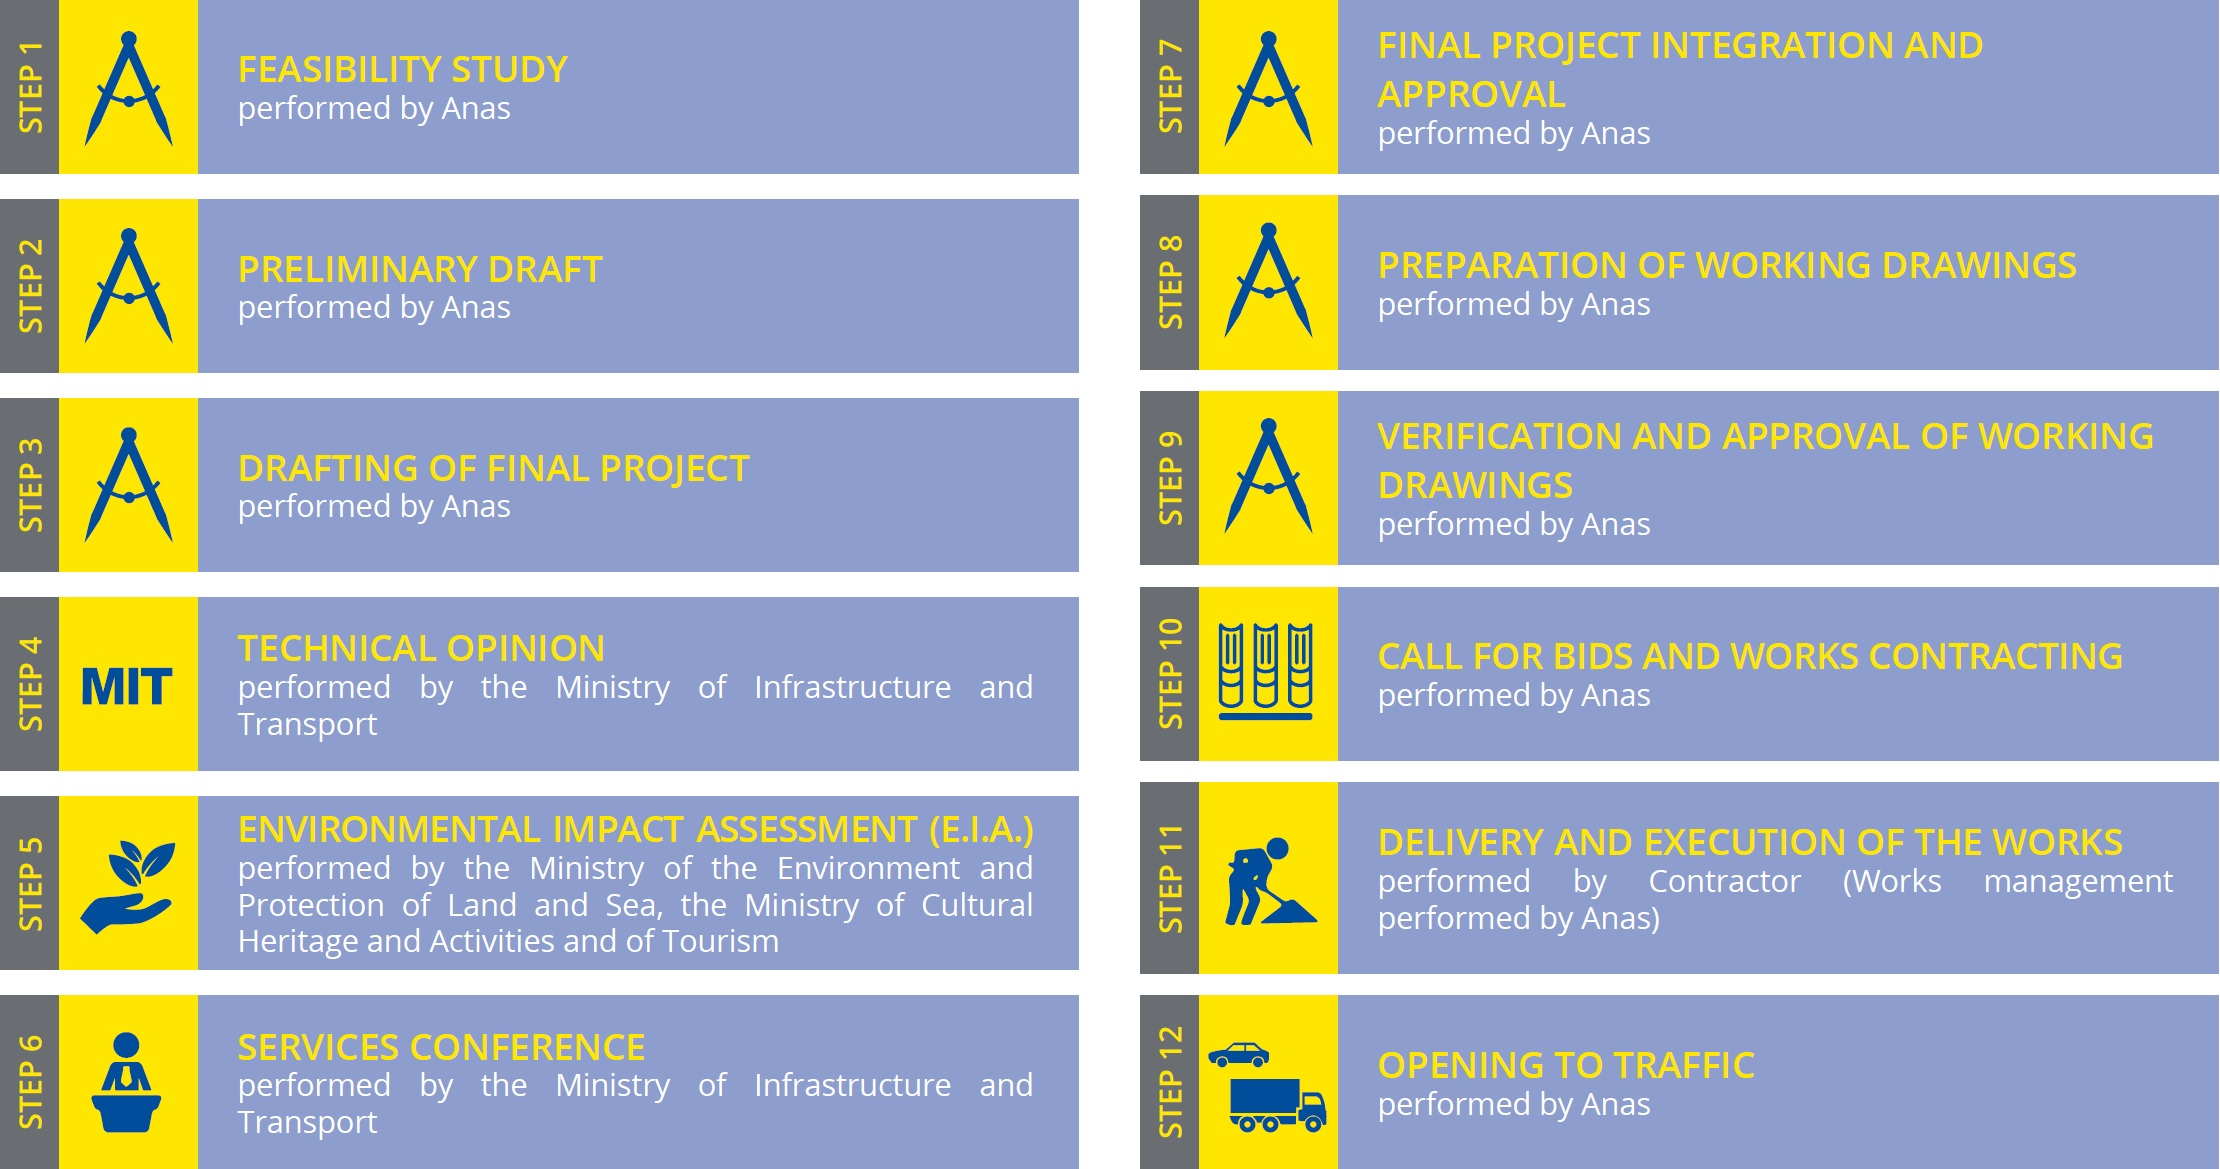 Graphic Chart of the various phases of a road project's approval process